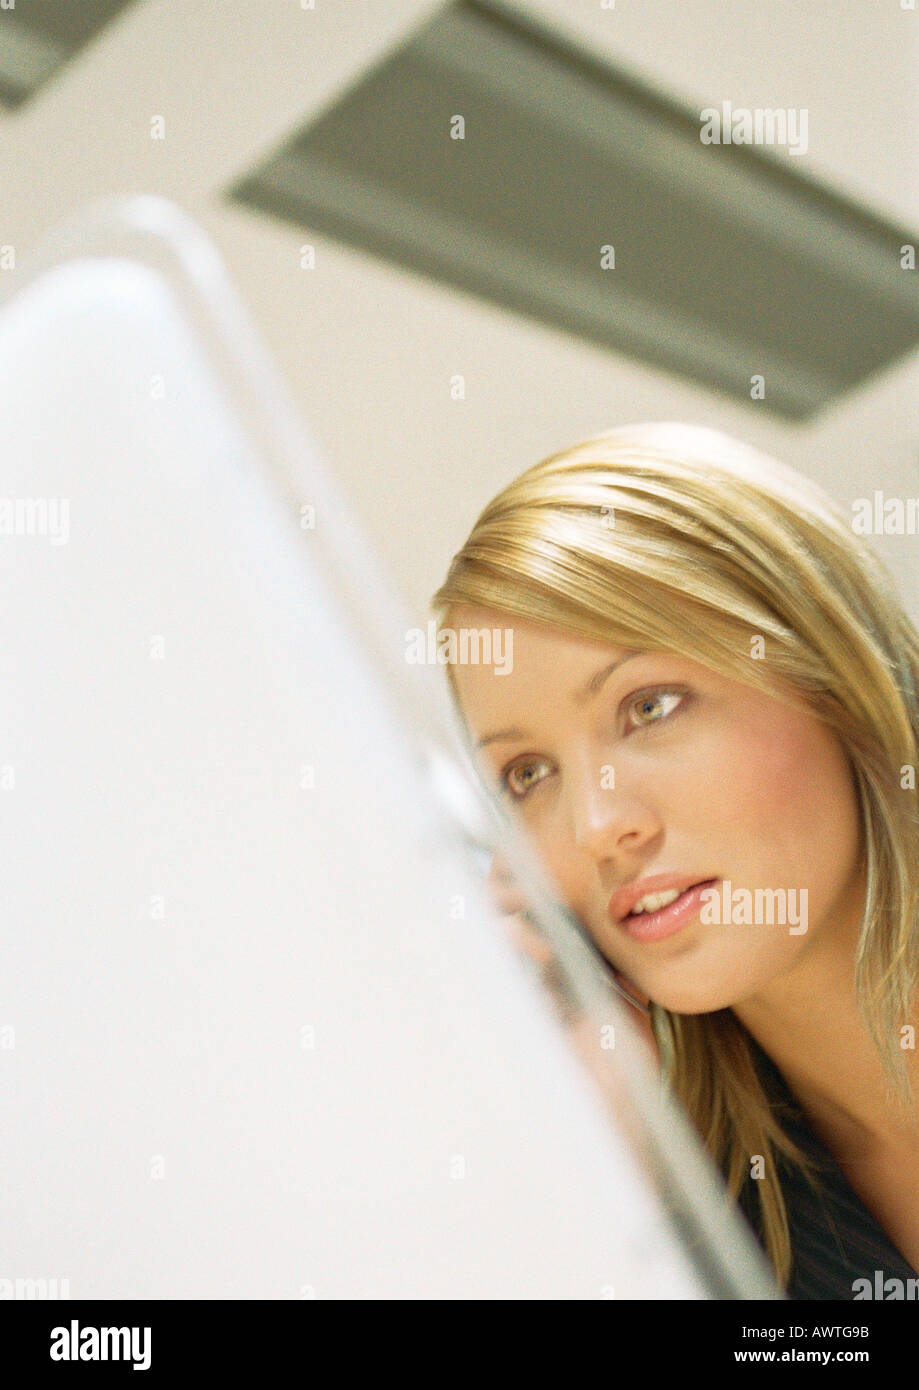 Businesswoman, close up. - Stock Image